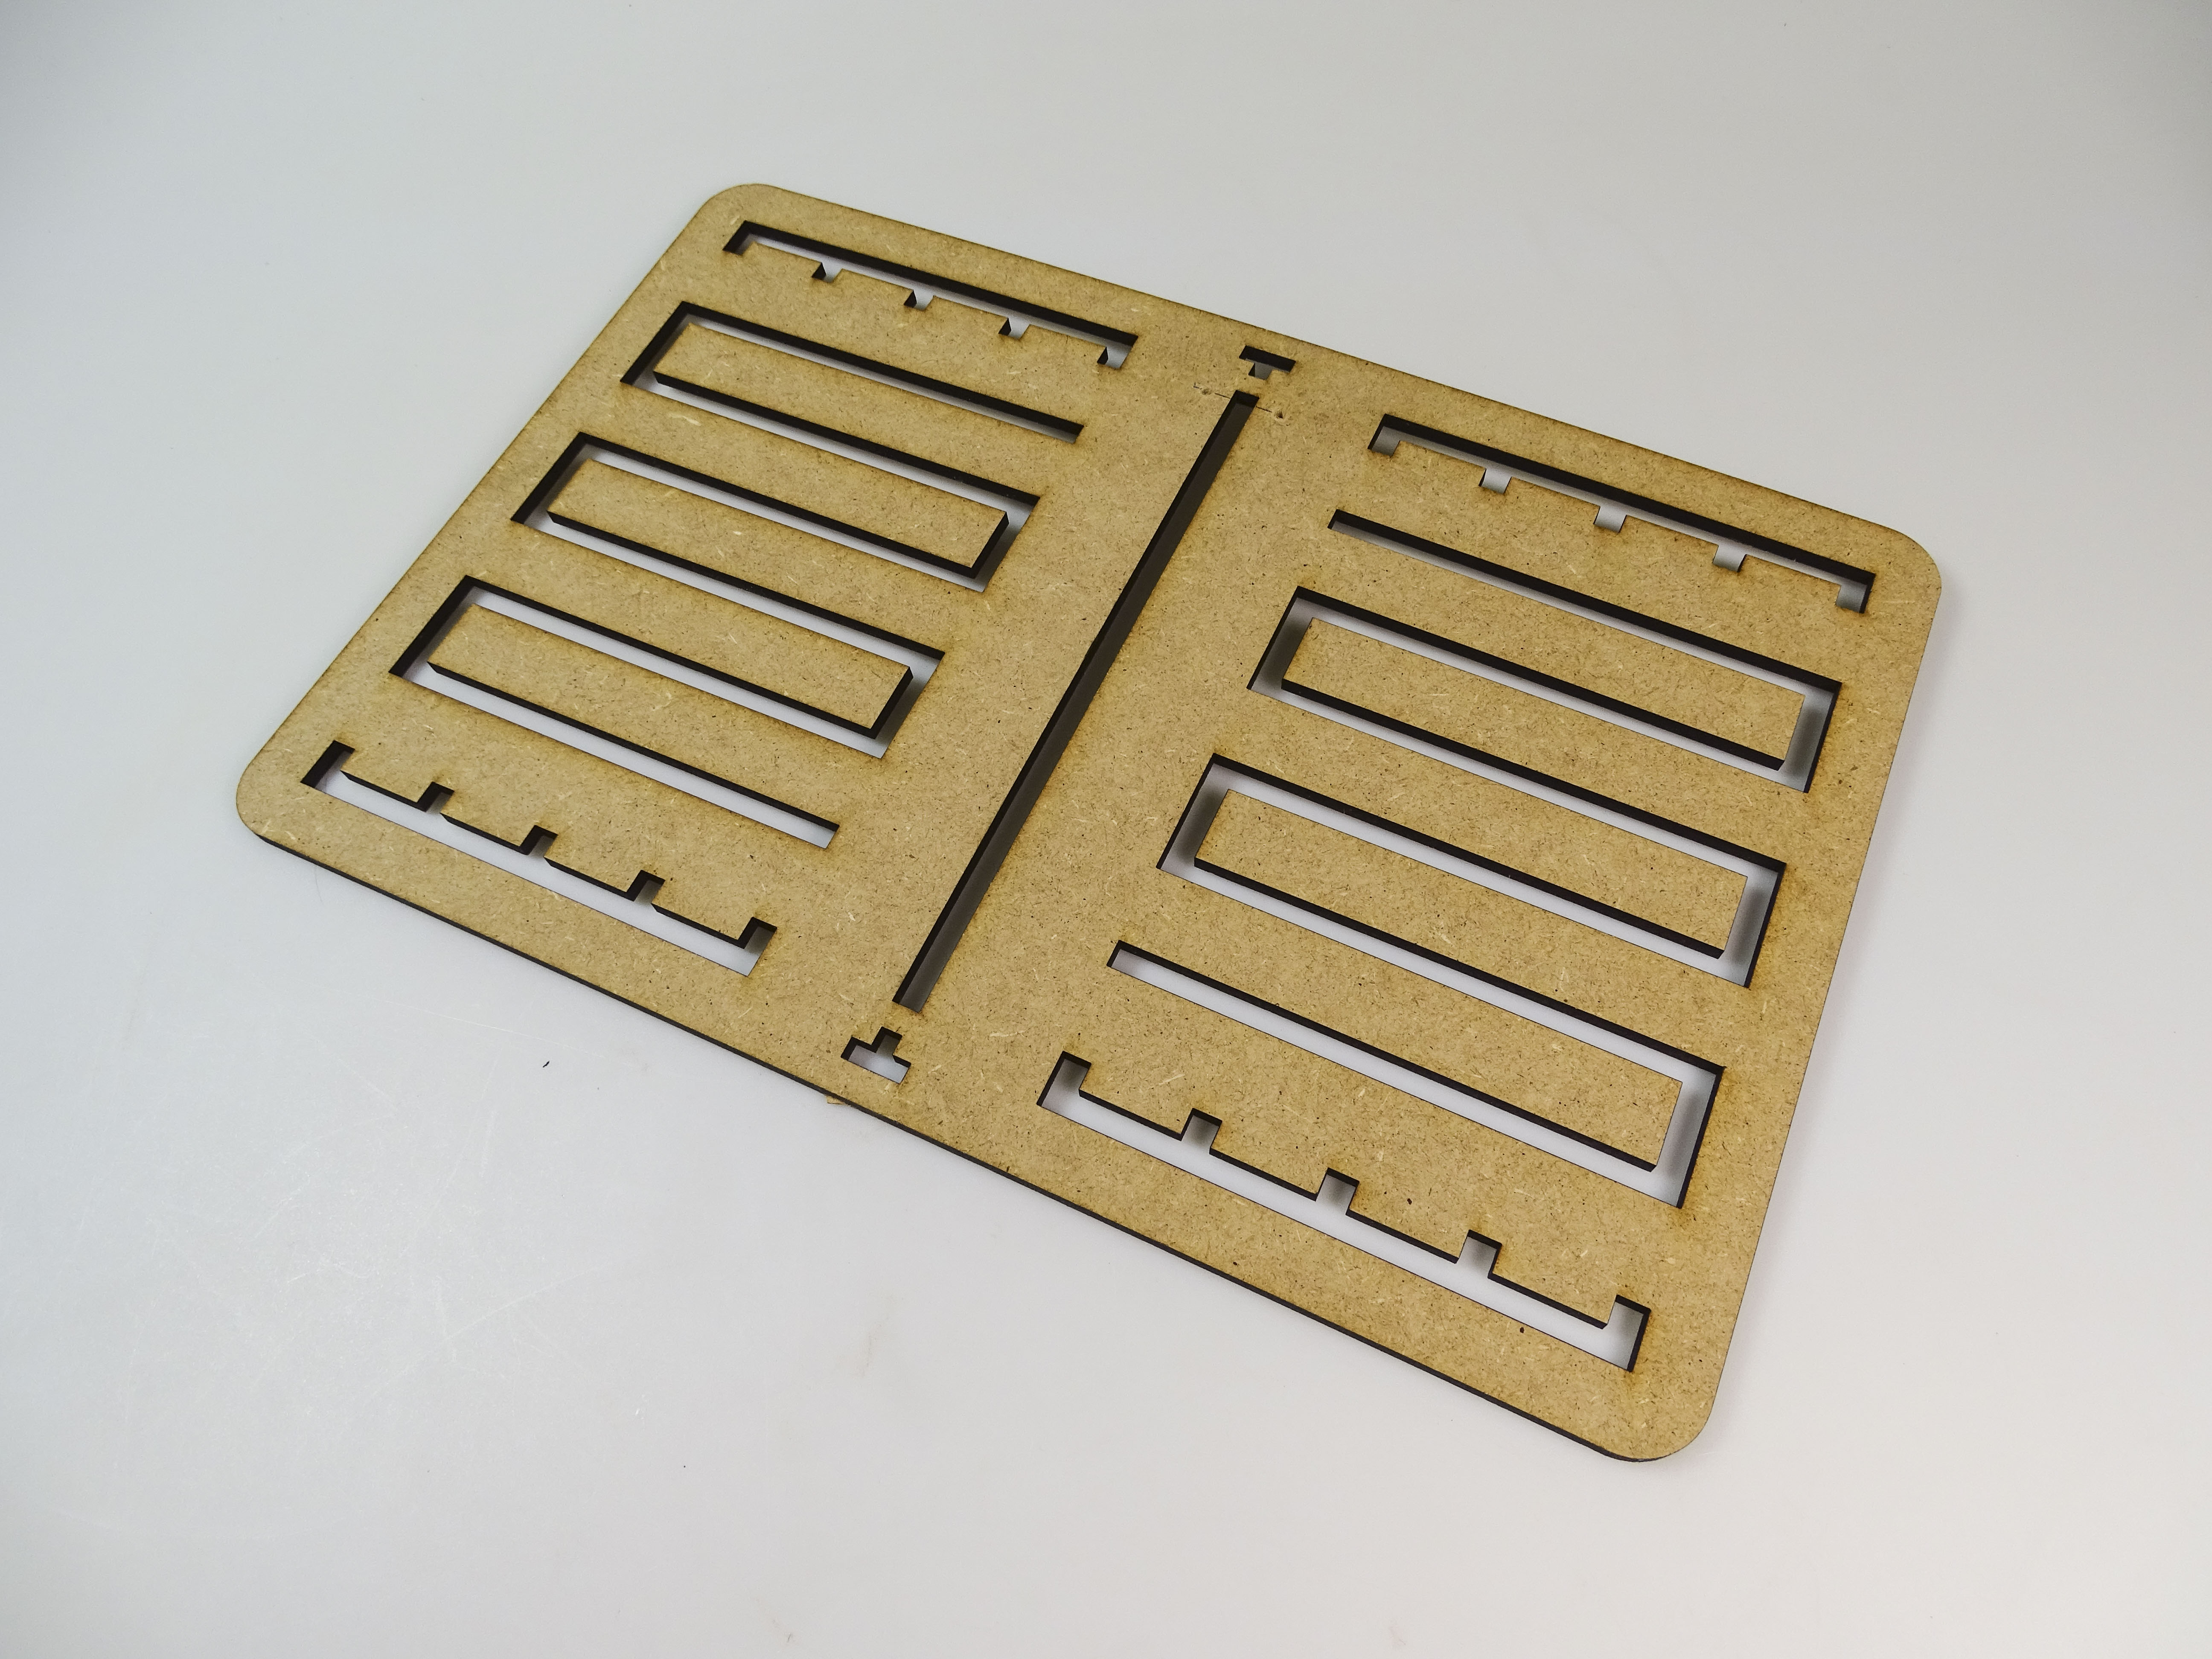 Picture of Lasercutting the Reading Plate